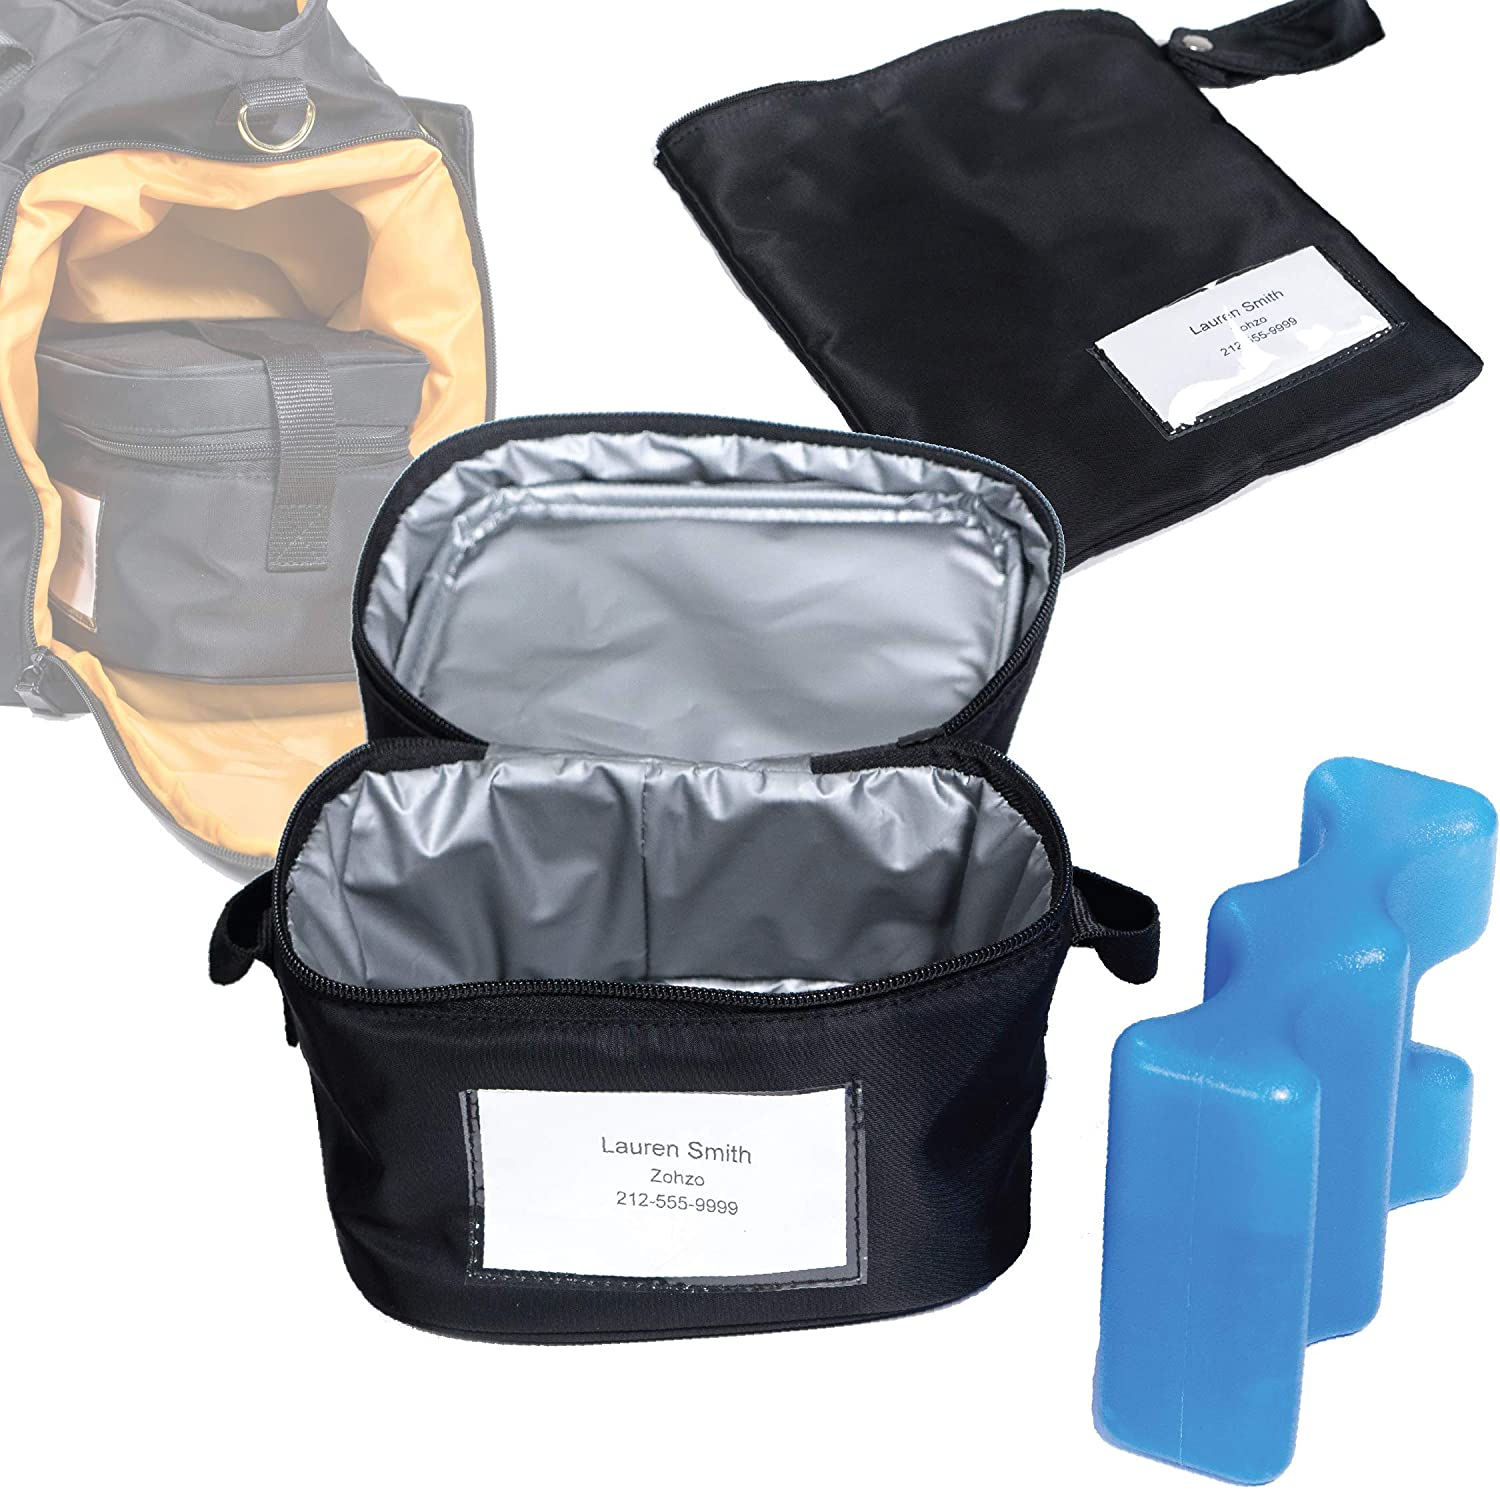 Zohzo Breastmilk Compact Cooler Bag with Ice Pack